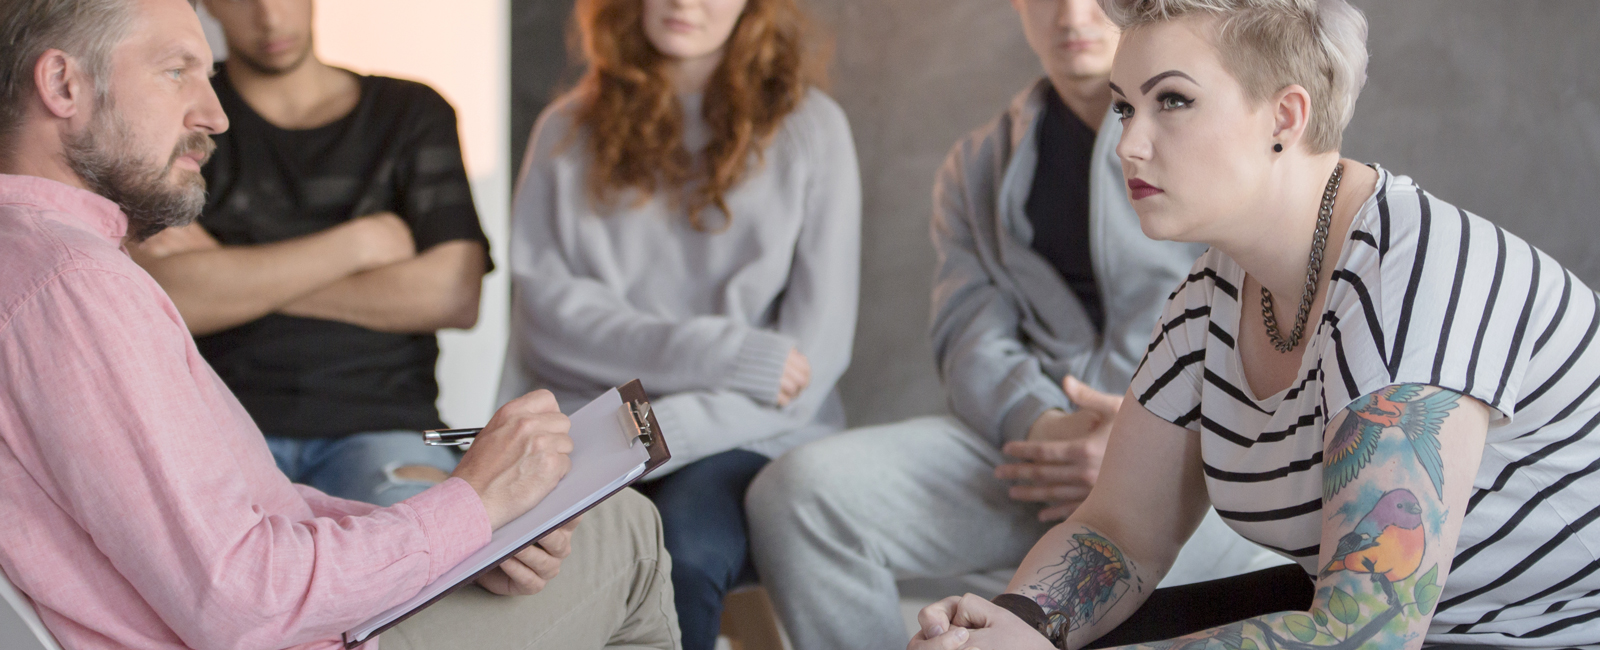 Teenage girl listening to a counselor in a circle with others.